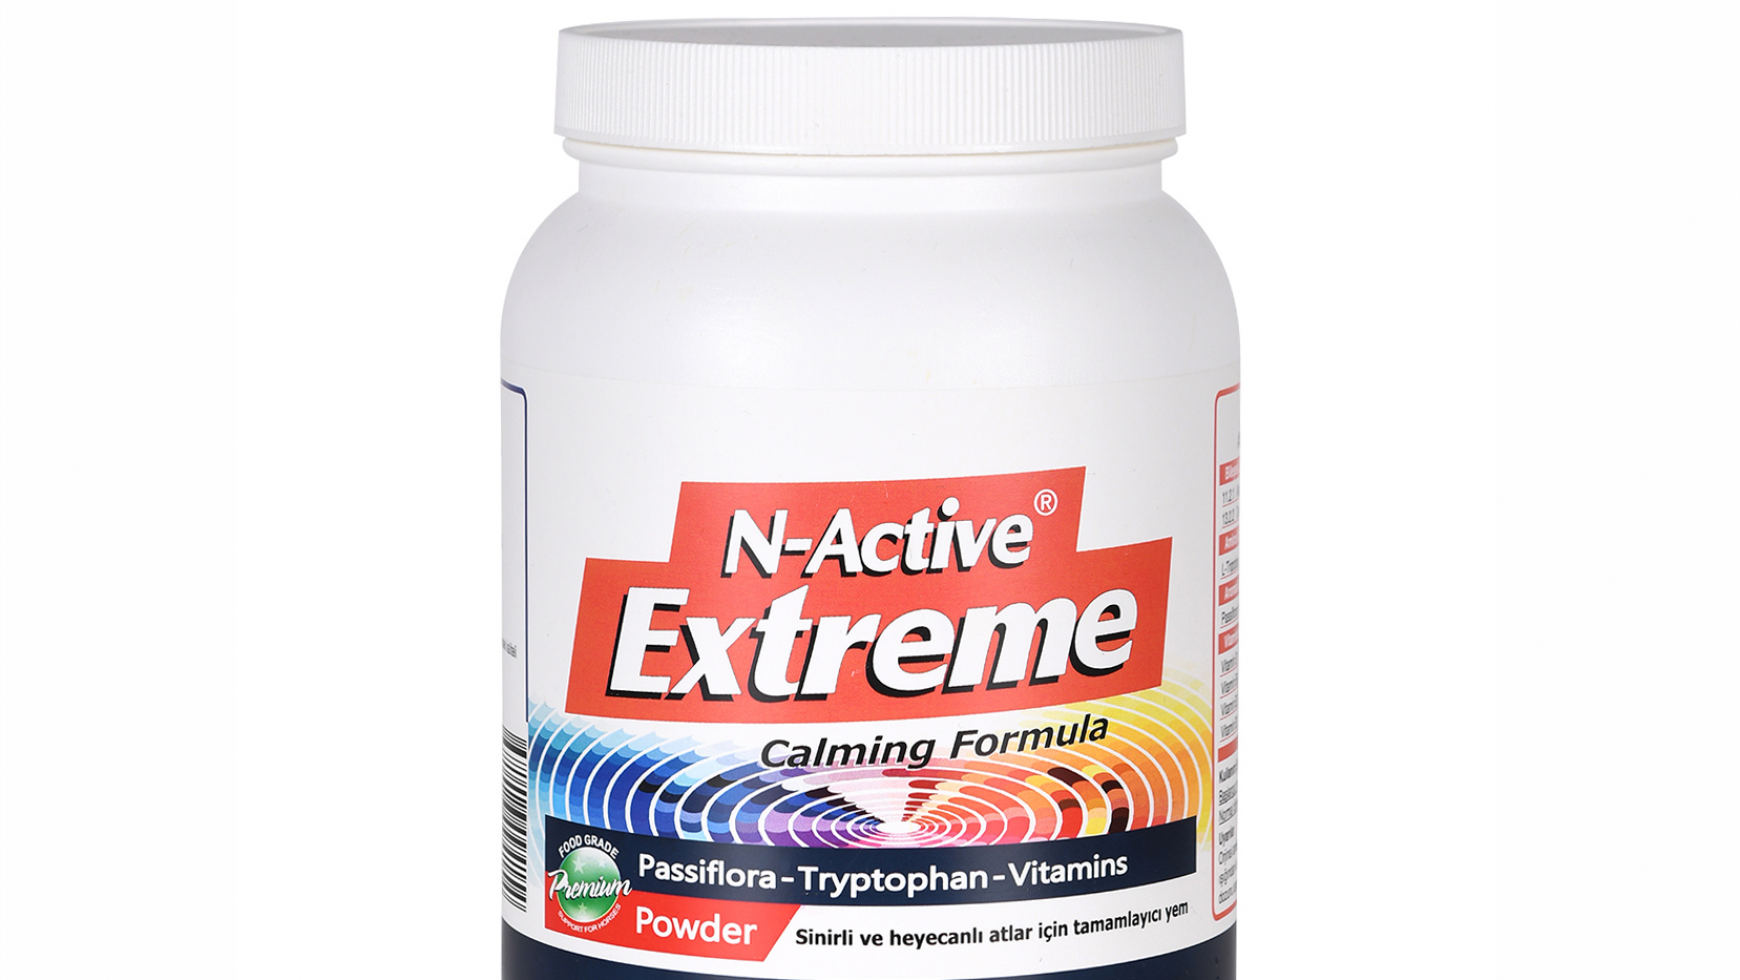 N-ACTIVE EXTREME